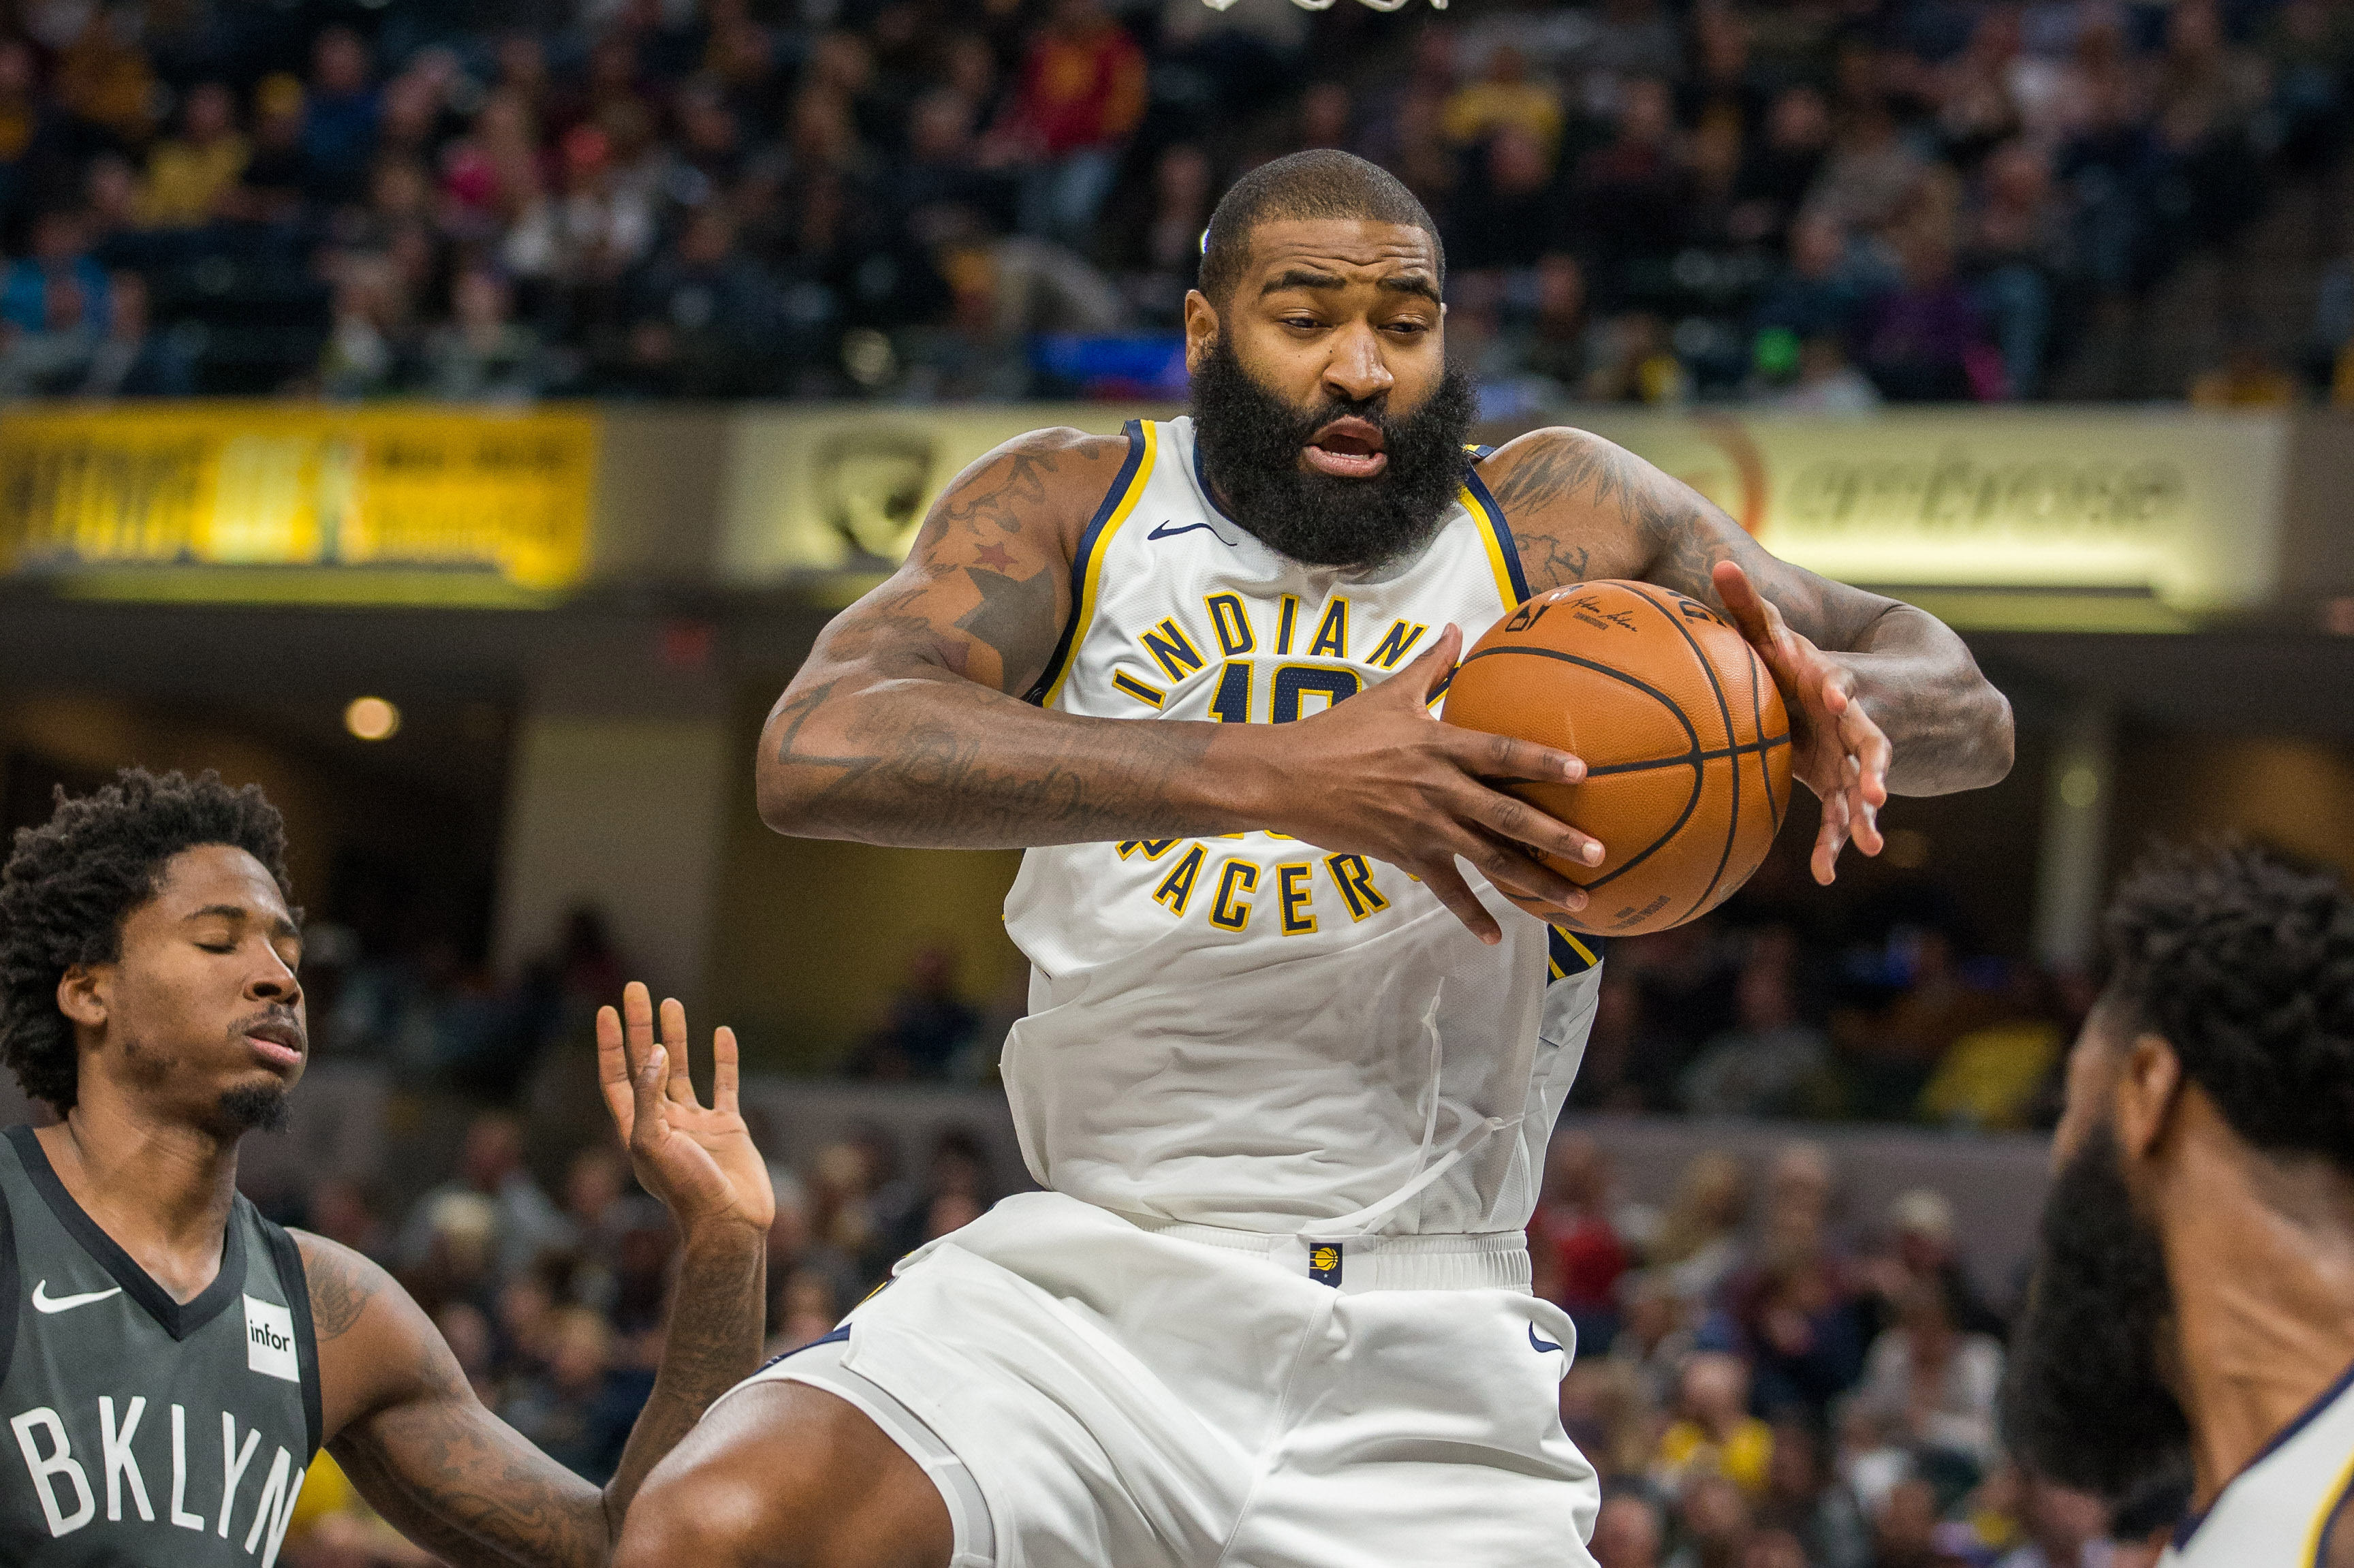 Oct 20, 2018; Indianapolis, IN, USA; Indiana Pacers center Kyle O'Quinn (10) rebounds the ball in the second half against the Brooklyn Nets at Bankers Life Fieldhouse.